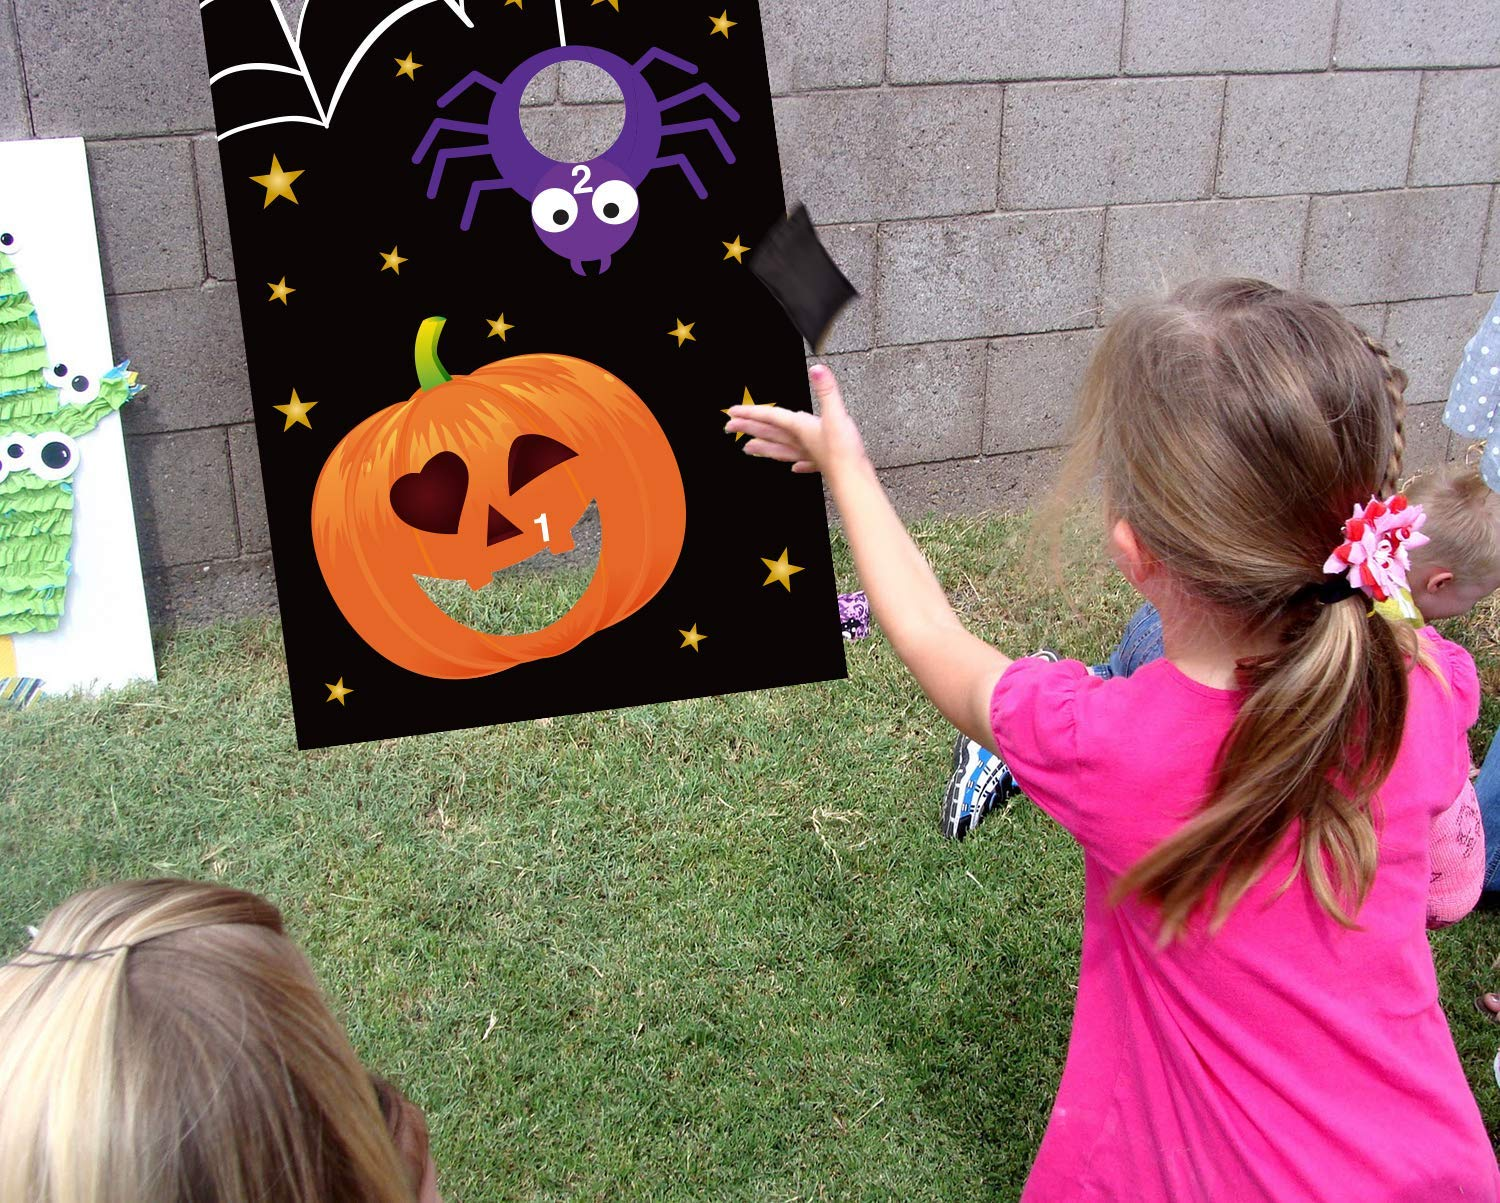 Alivier Halloween Party Games Pumpkin Bean Bag Hanging Toss Games with 3 Bean Bags for Kids Party Halloween Decorations